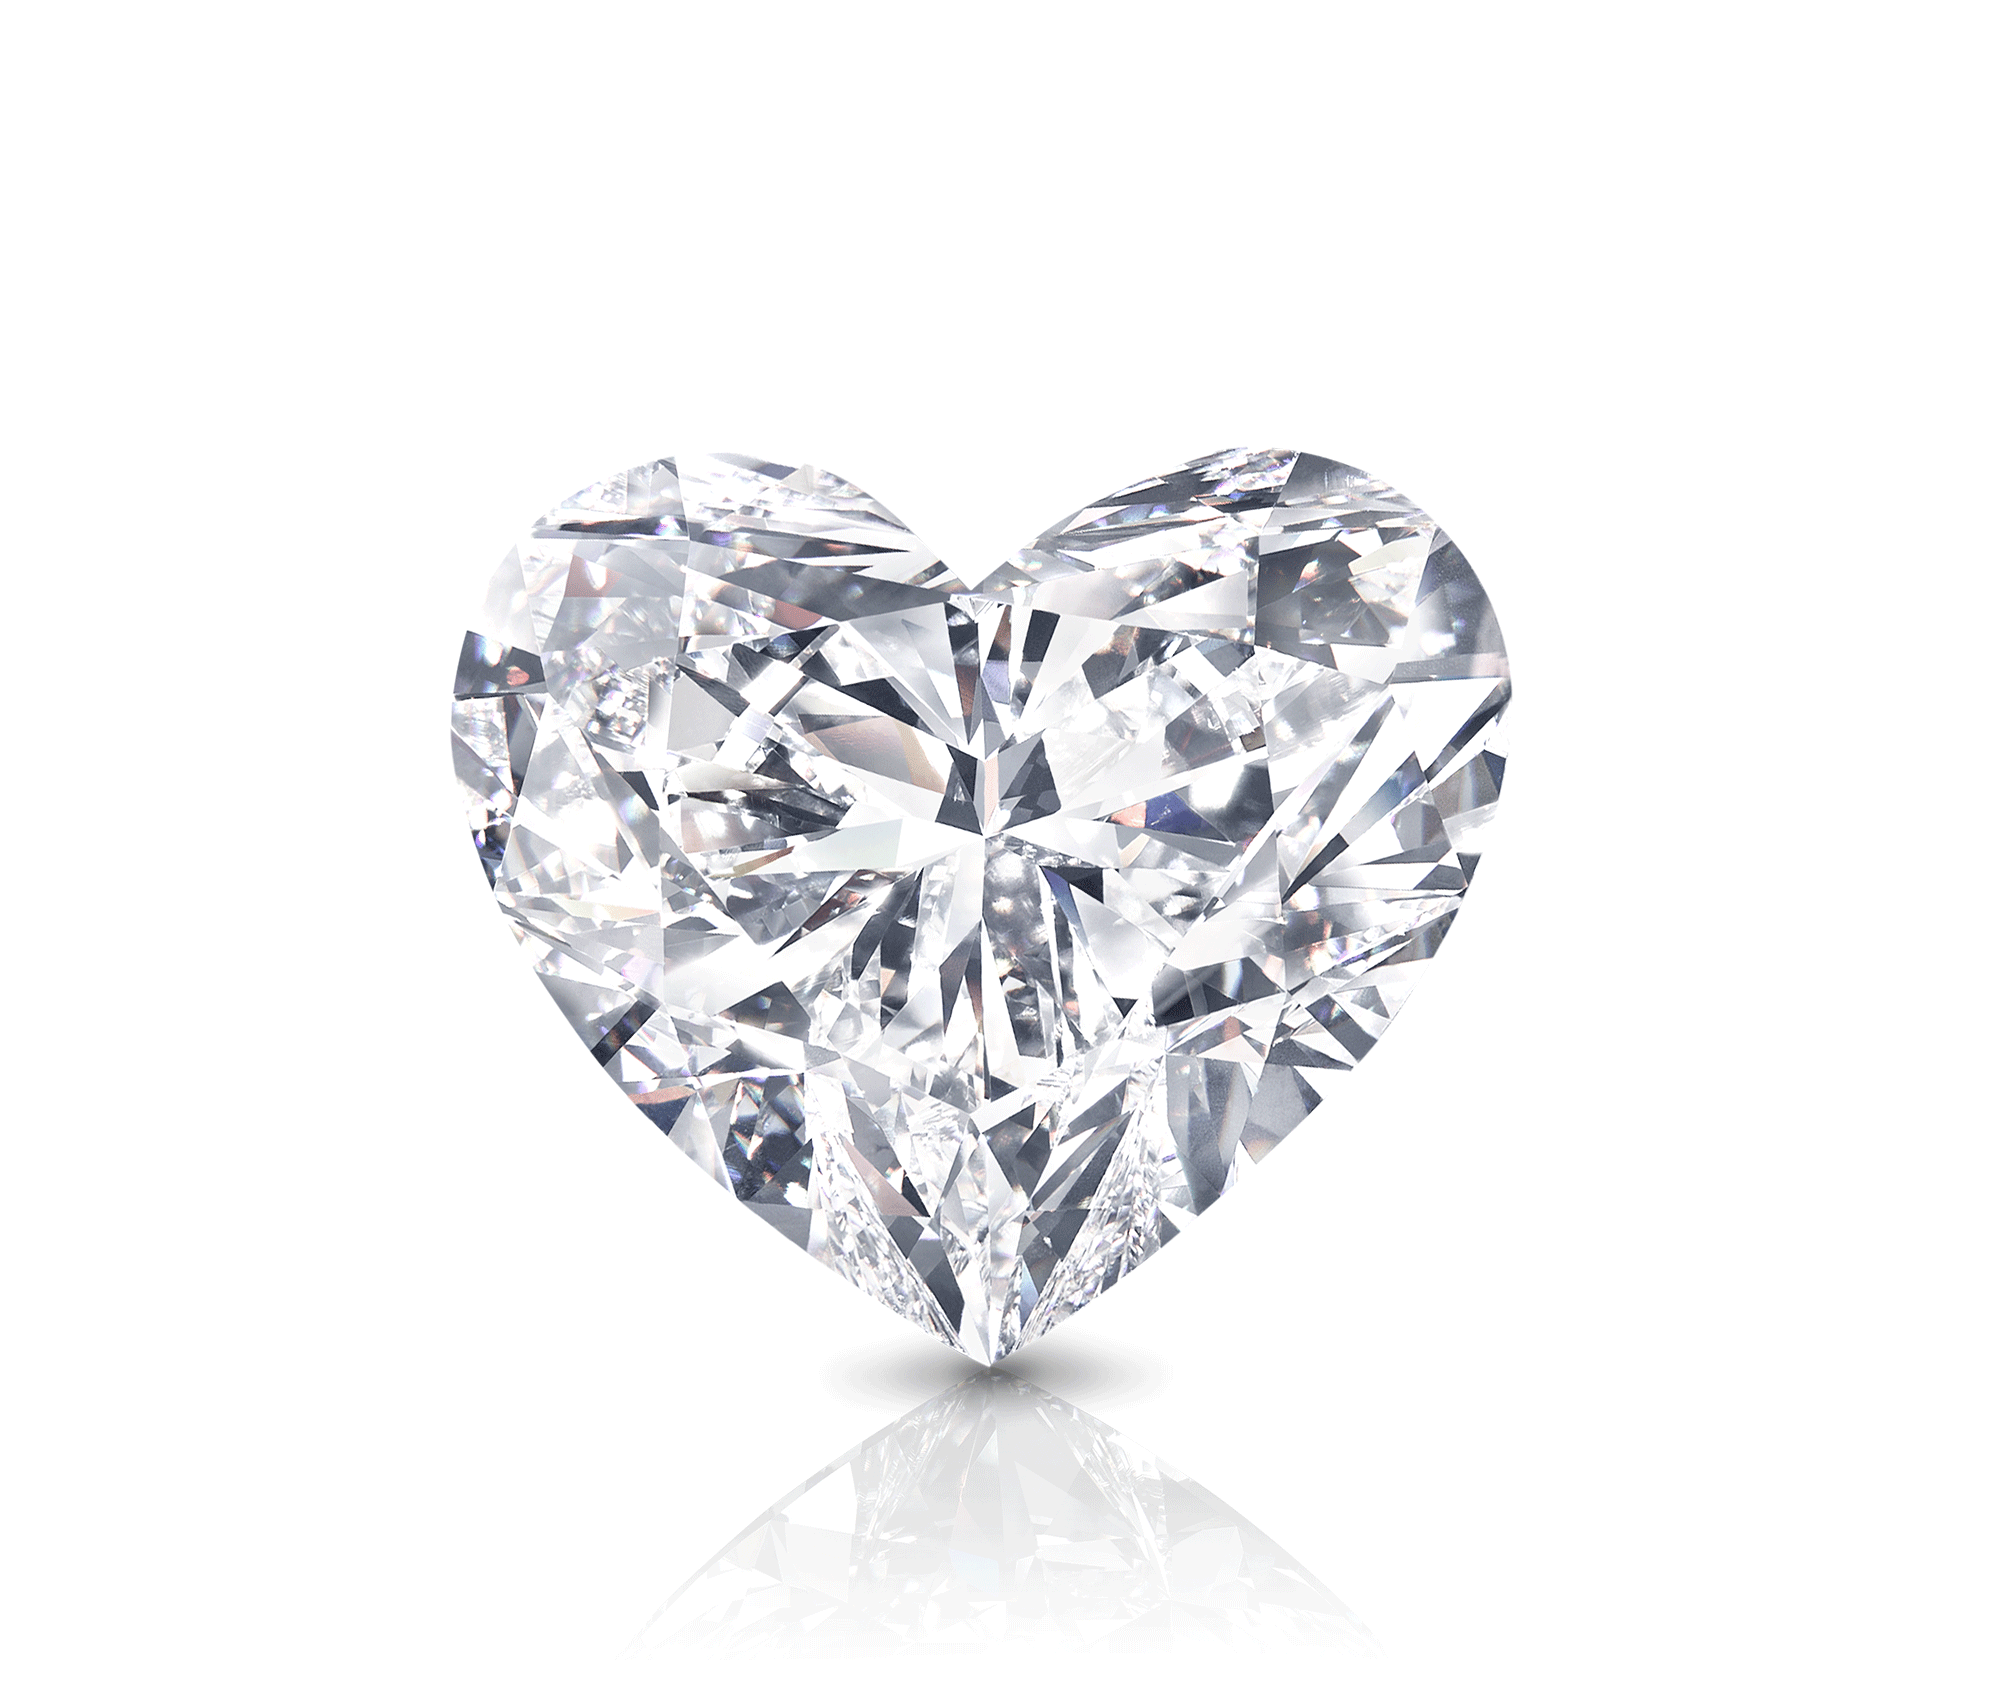 The Graff Venus - a heart shape white diamond